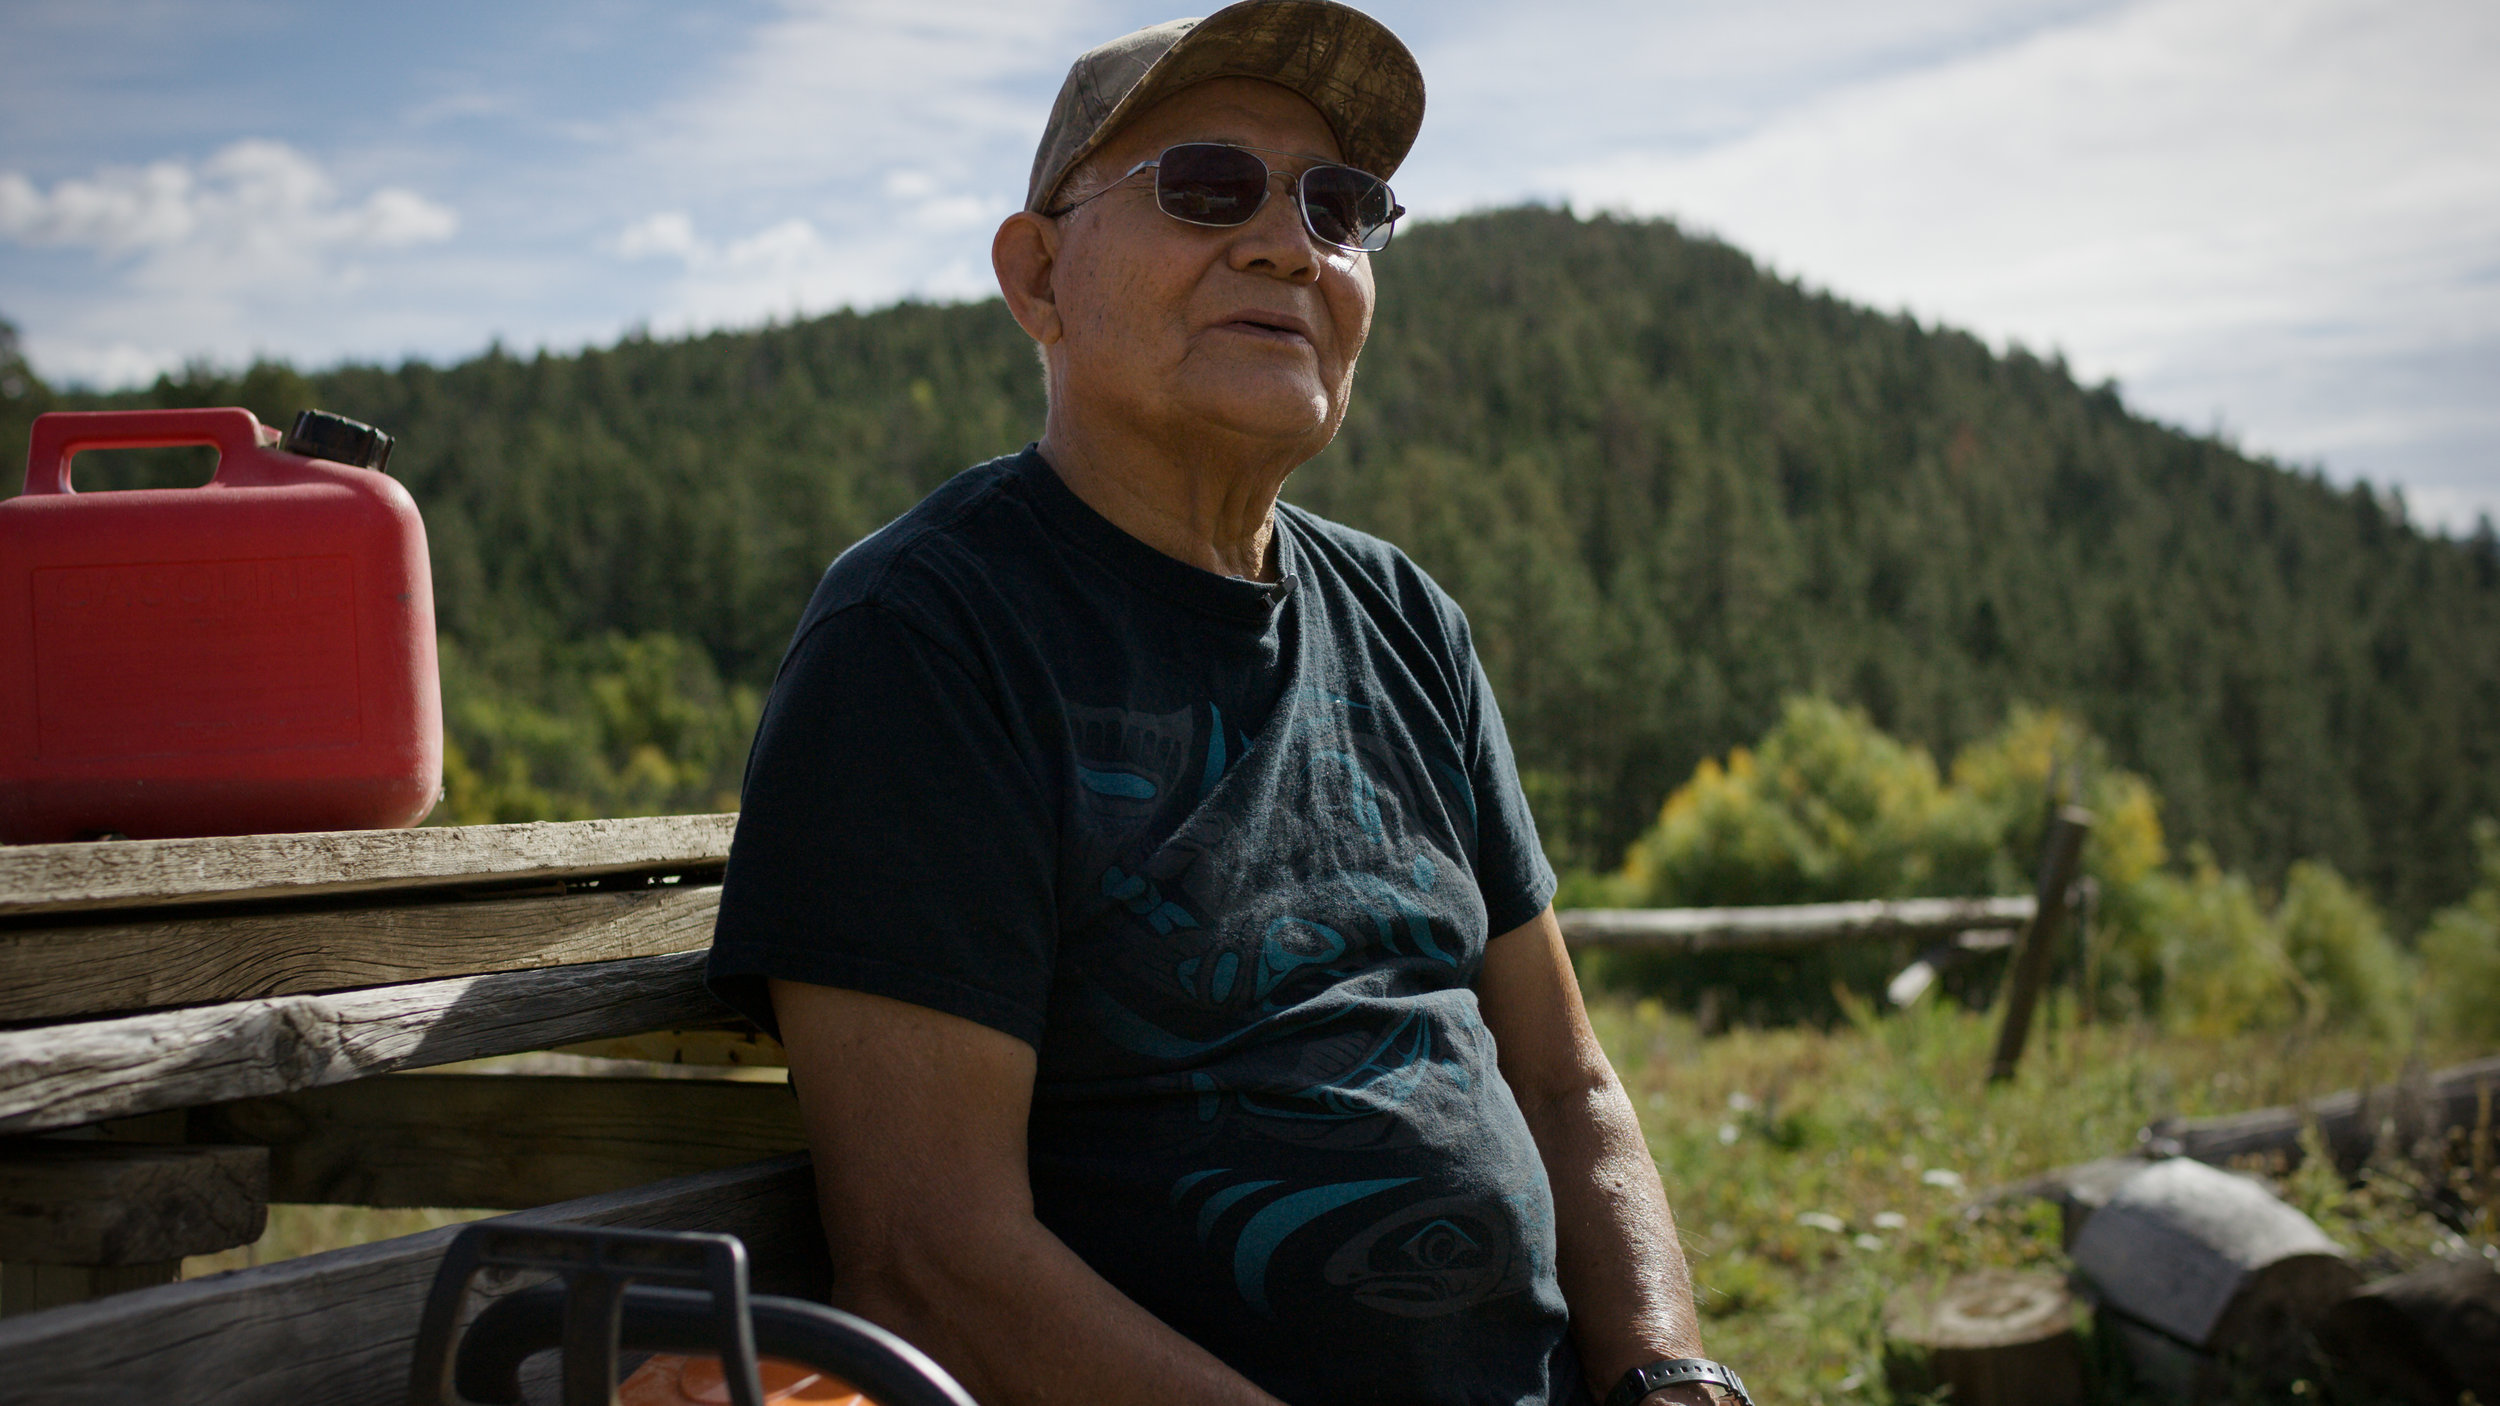 Tito Naranjo takes a break from chopping wood to share memories of his life.